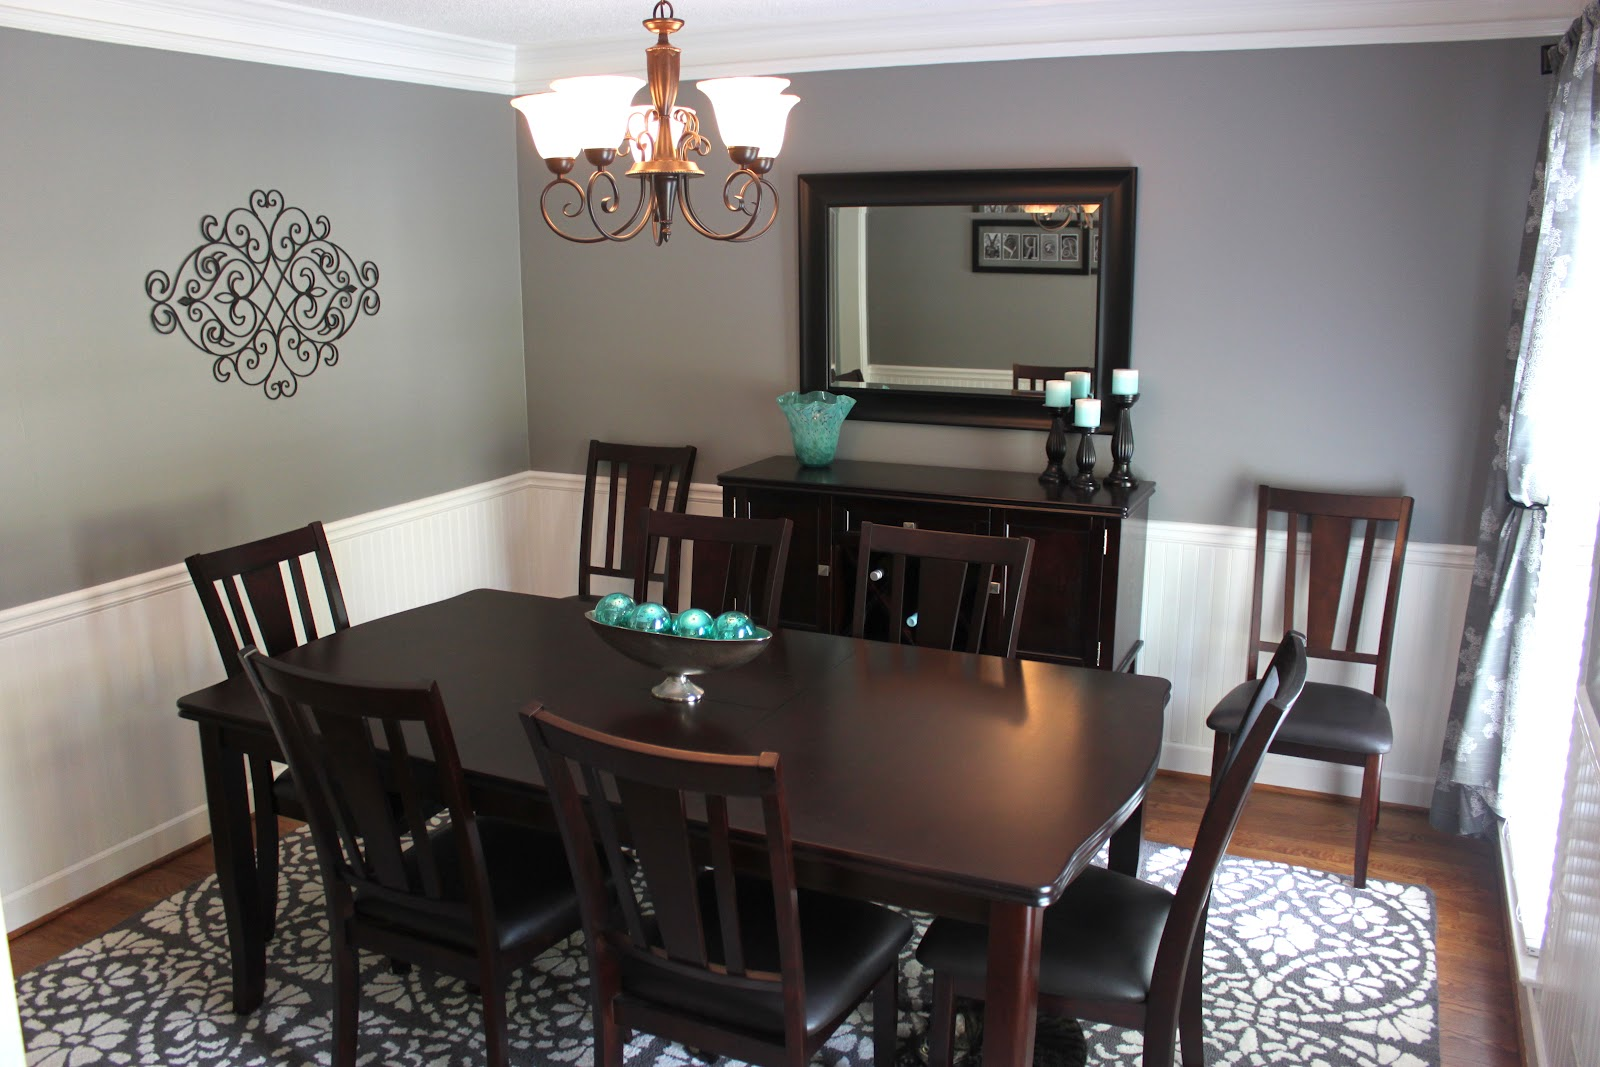 The Smitten Mintons Dining Room Makeover